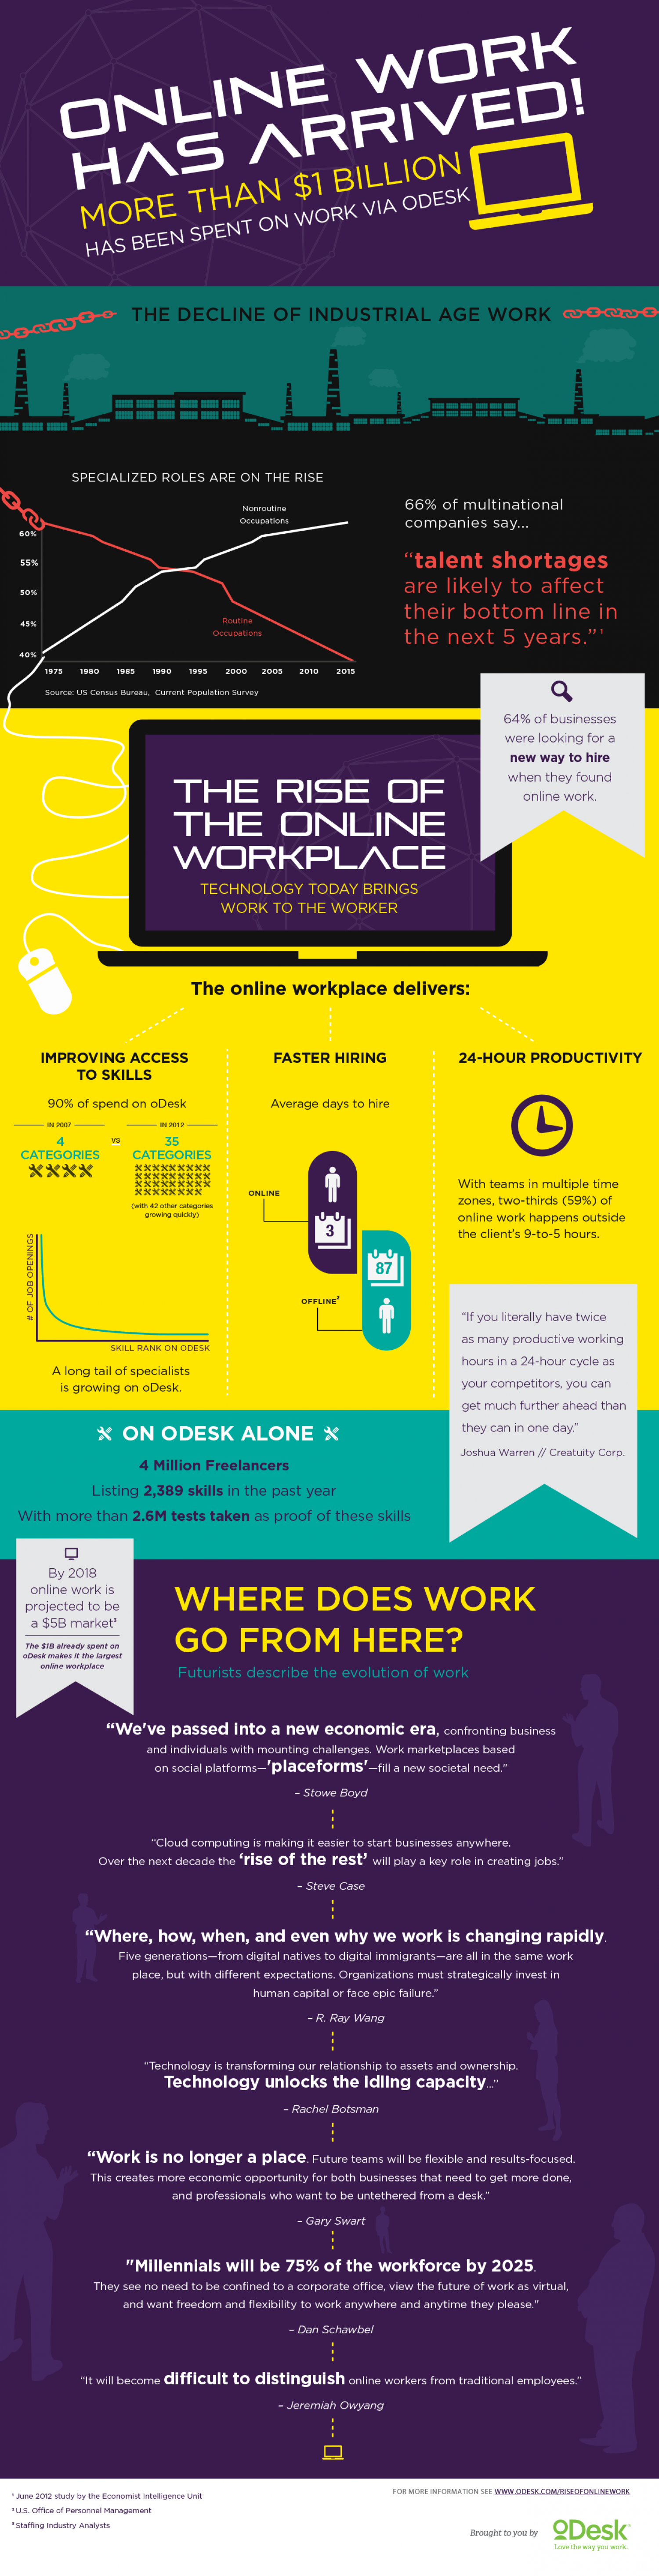 The Rise of Online Work Infographic